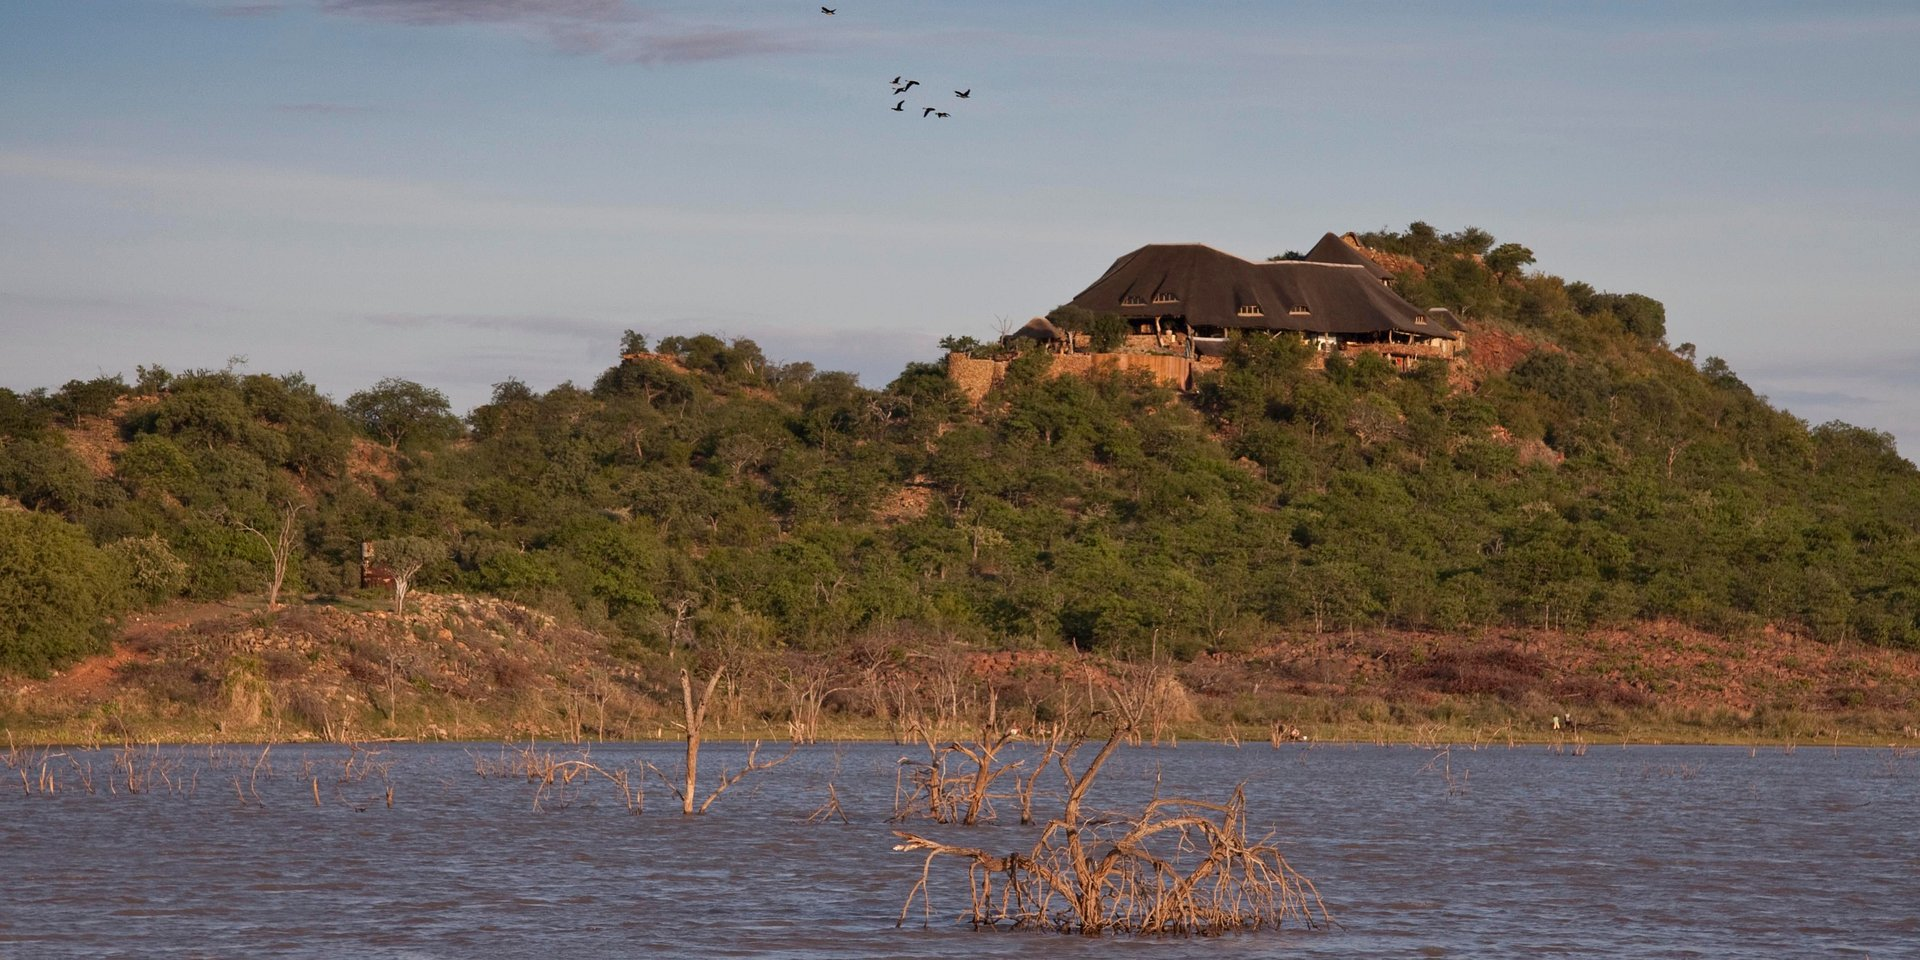 Coldwell Banker Residential Brokerage Lists a Private Nature Reserve in South Africa for $58 Million